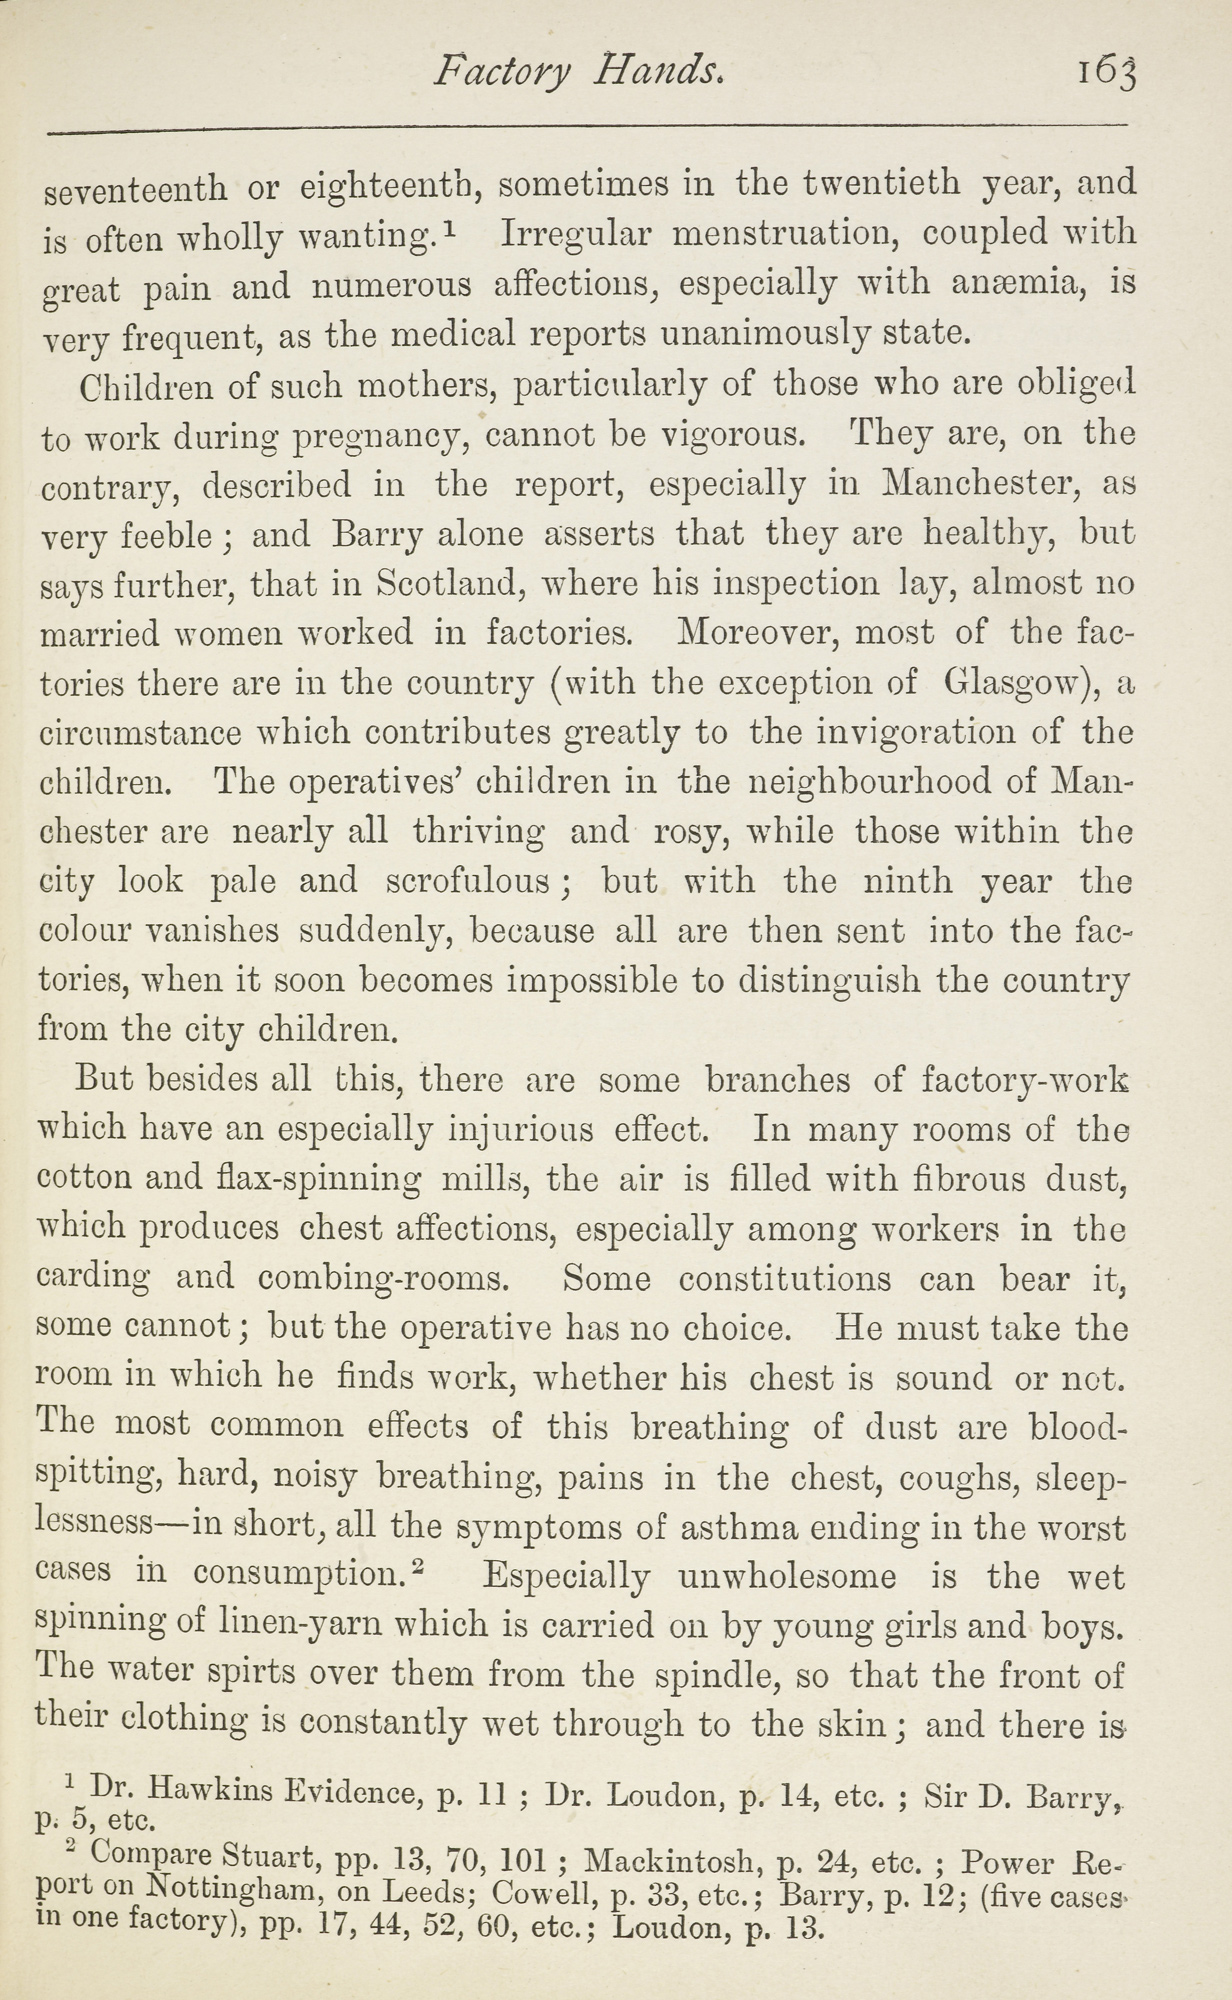 The condition of the working class in England in 1844 by